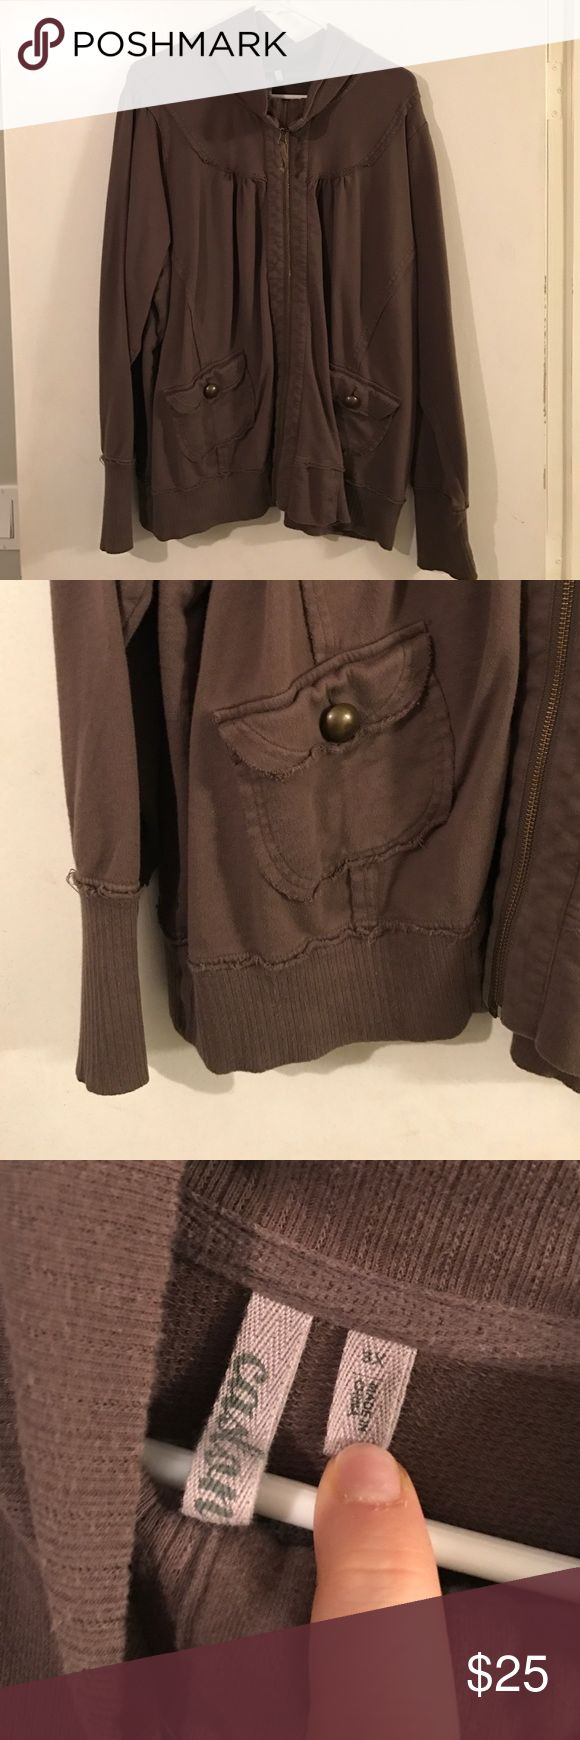 Caslon (Nordstrom) 3x olive green zip up Caslon brand from Nordstrom olive green zip up in size 3X with gold zip and metal buttons on the pockets Caslon Tops Sweatshirts & Hoodies